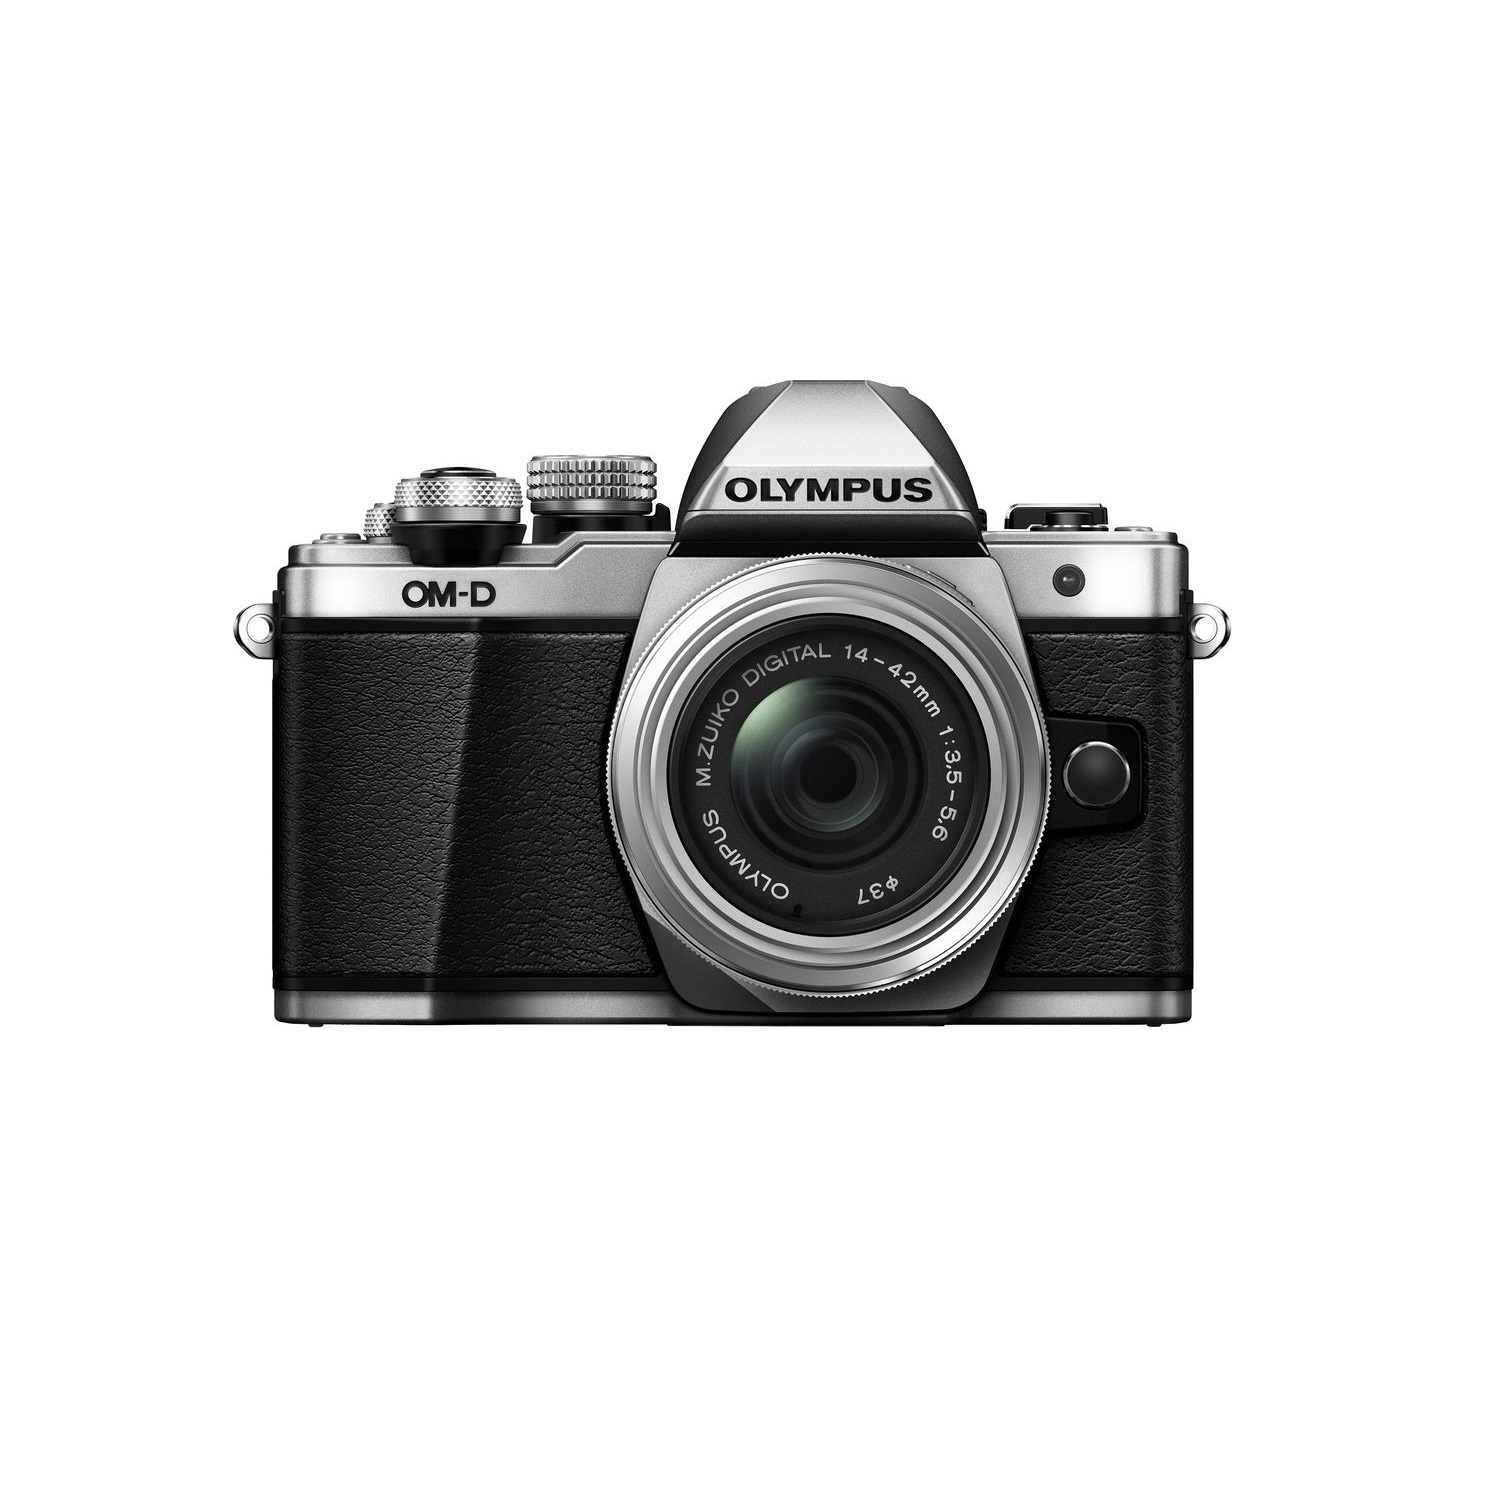 Olympus OM-D Mark II 16.1 Megapixel Mirrorless Camera, Silver